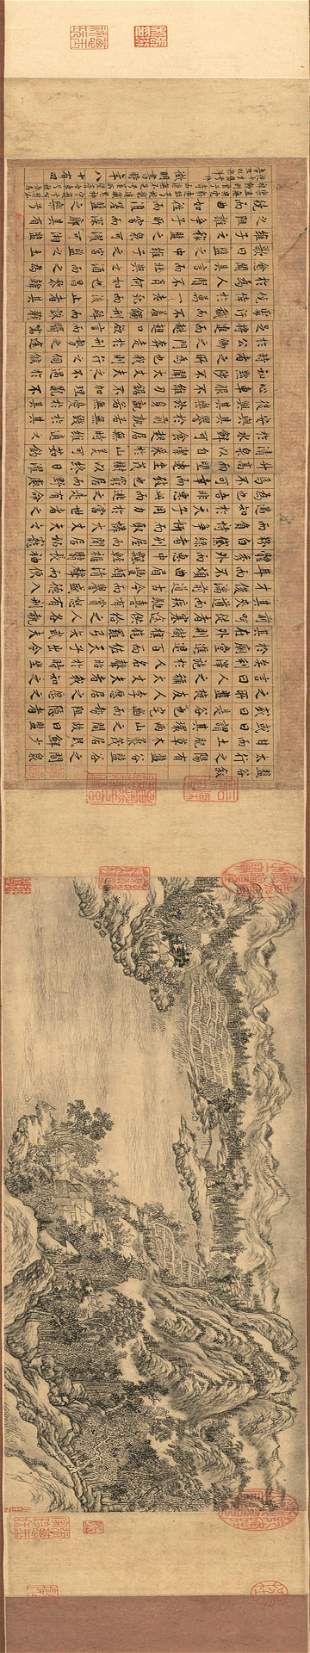 Ming dynasty calligraphy and landscape painting by Wen